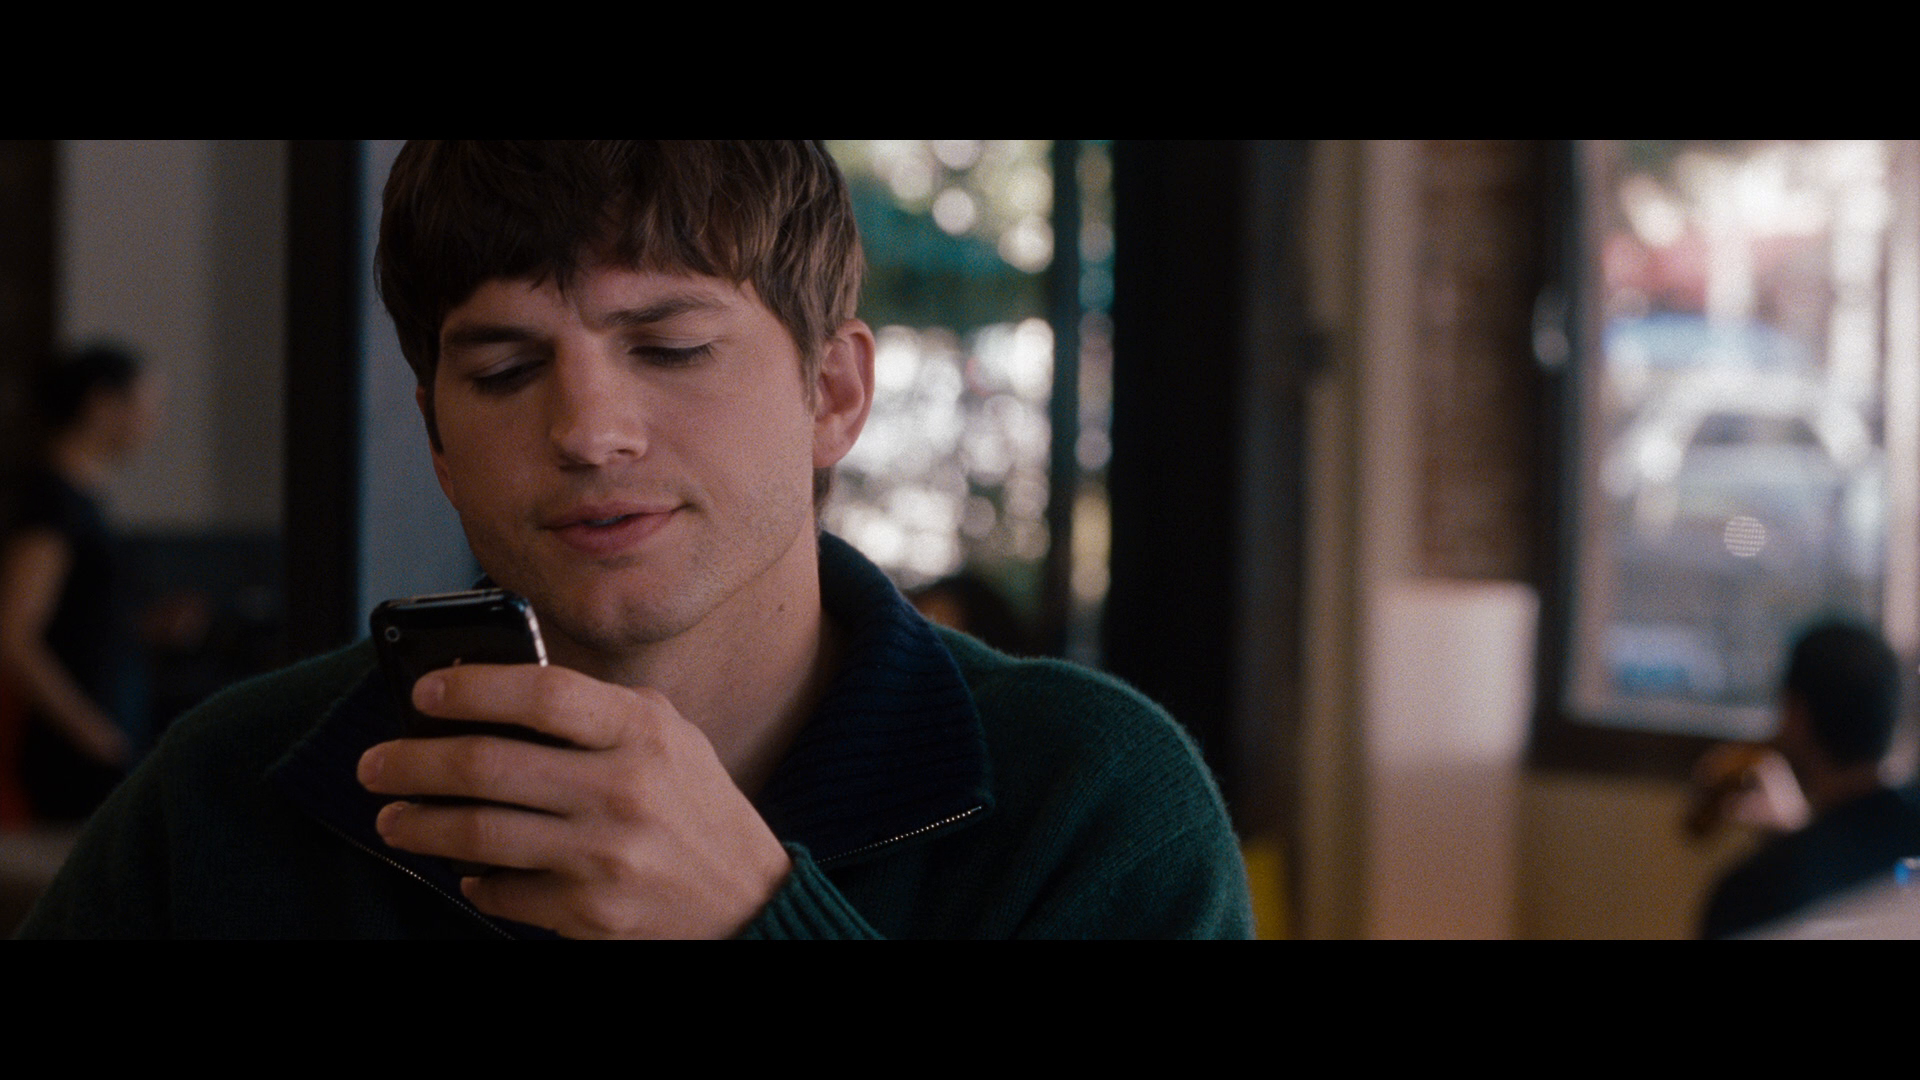 No Strings Attached 2011 BluRay REMUX 1080p AVC DTS-HD MA 5.1-SiCaRio